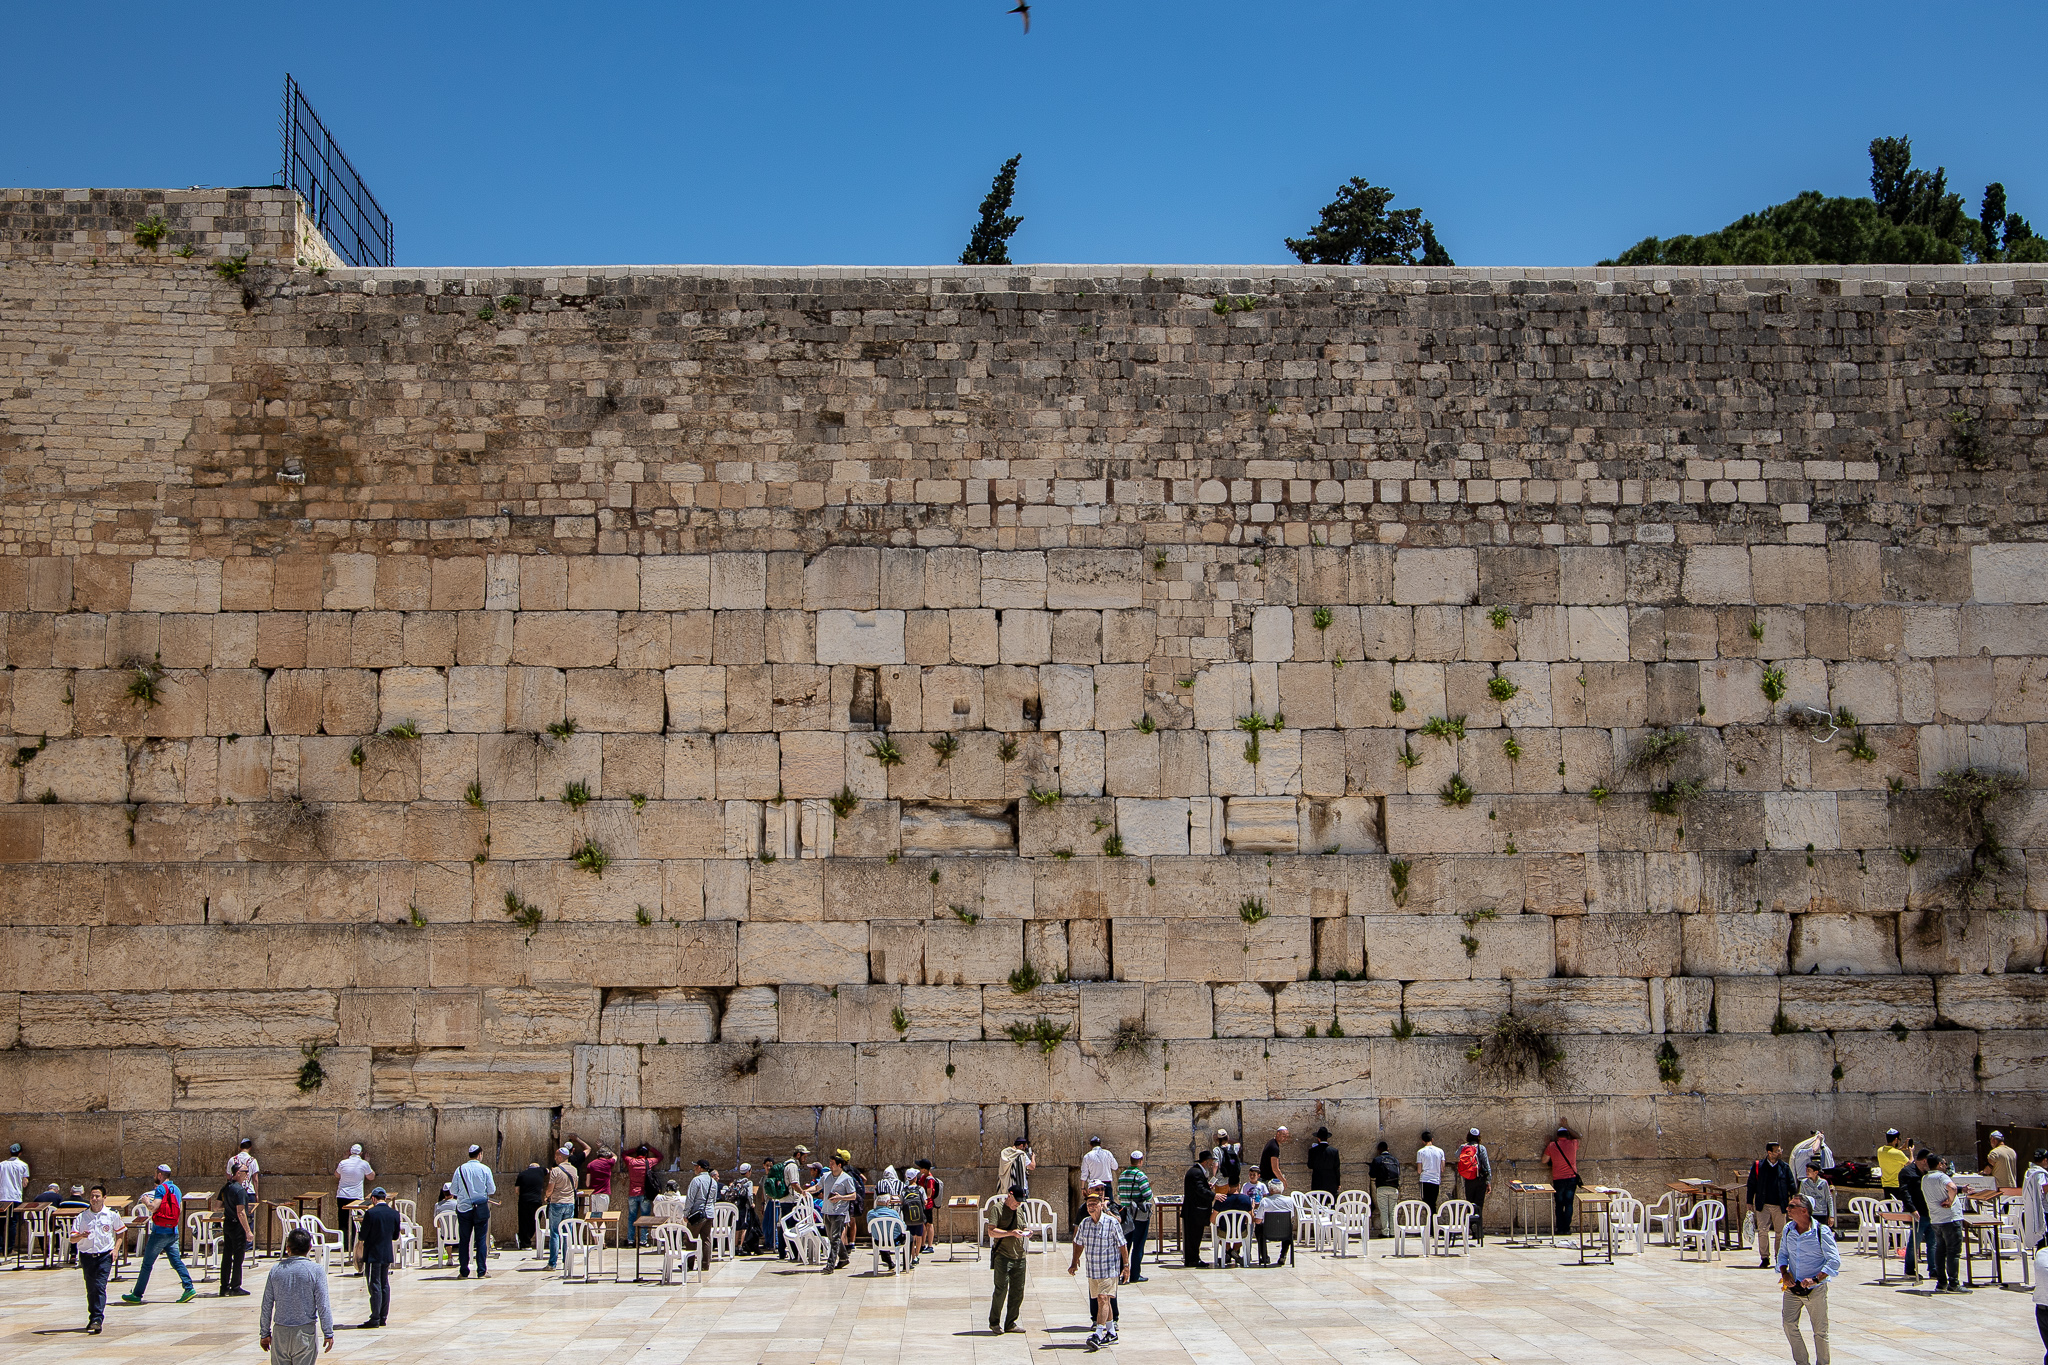 The Wailing Wall in front of the plaza